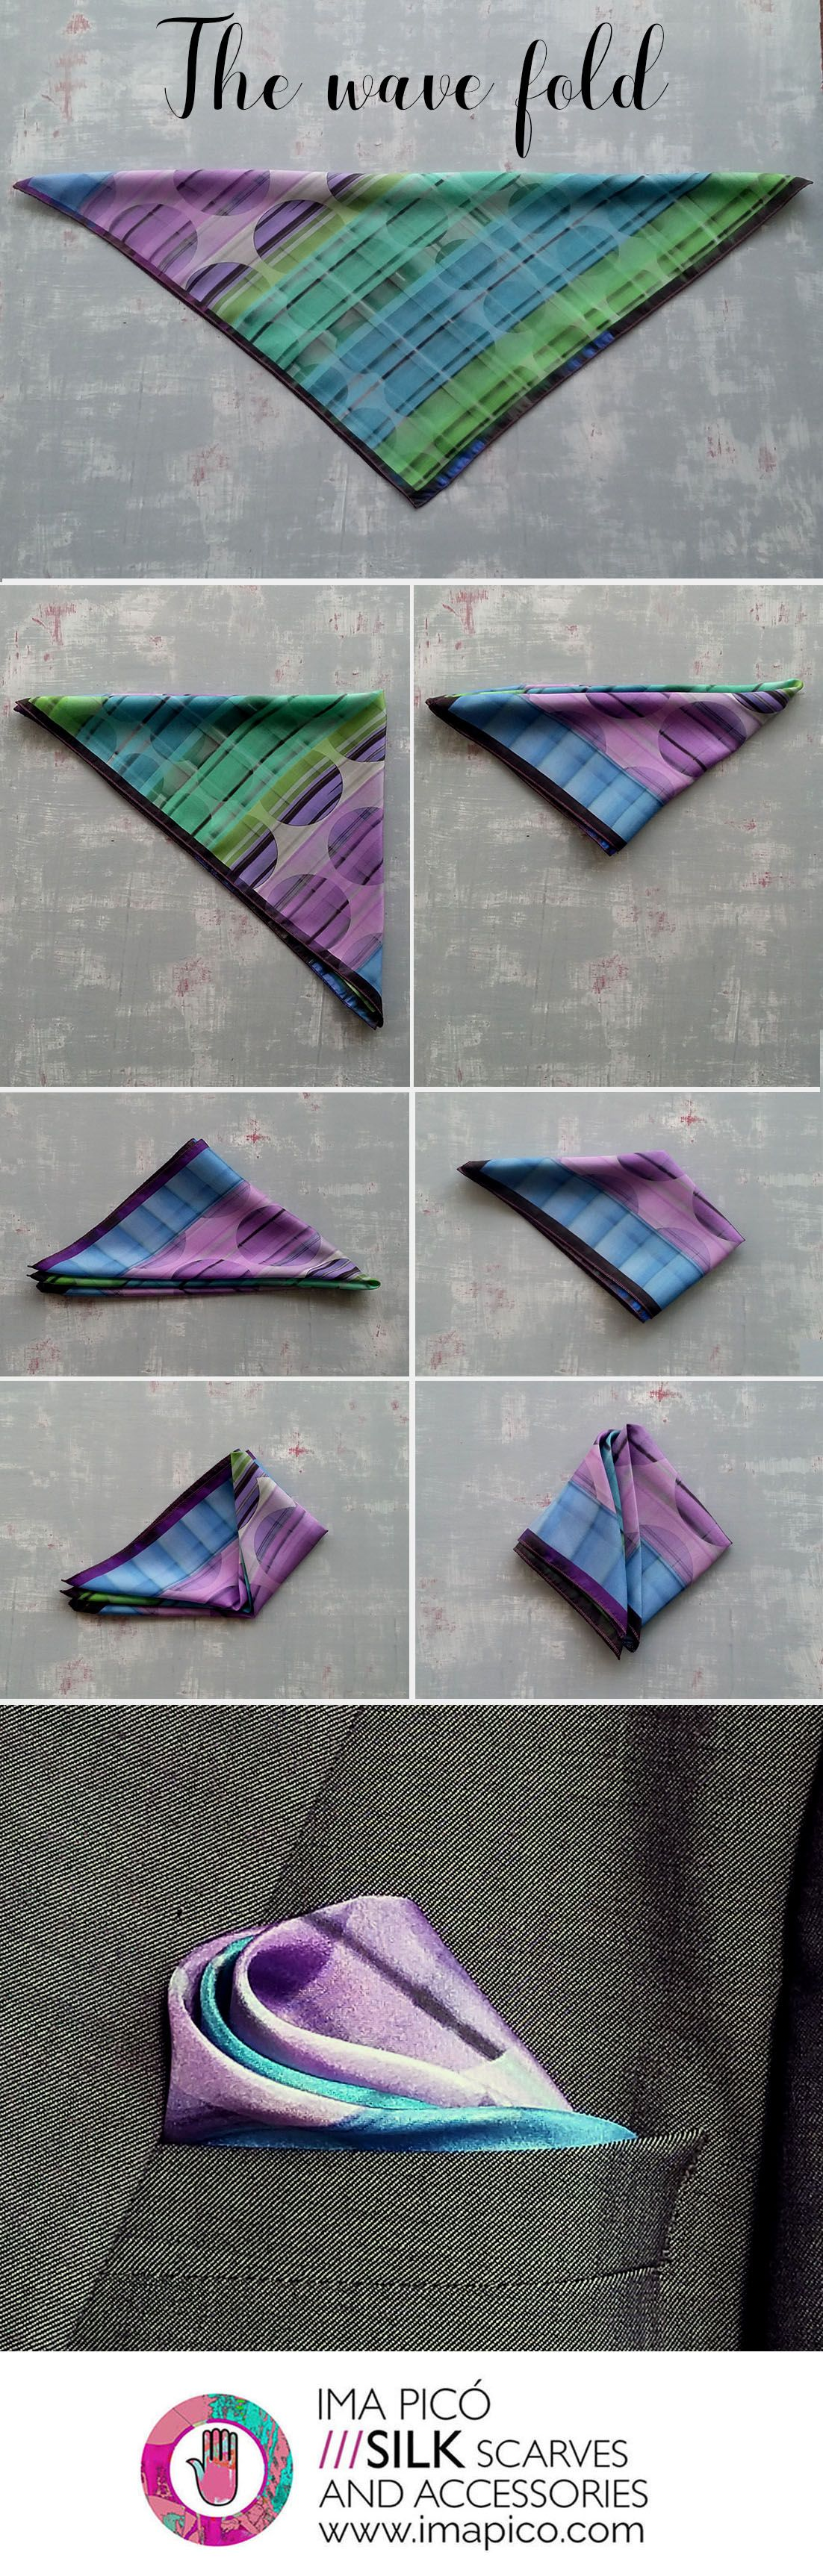 How to fold a pocket square series - The wave fold -